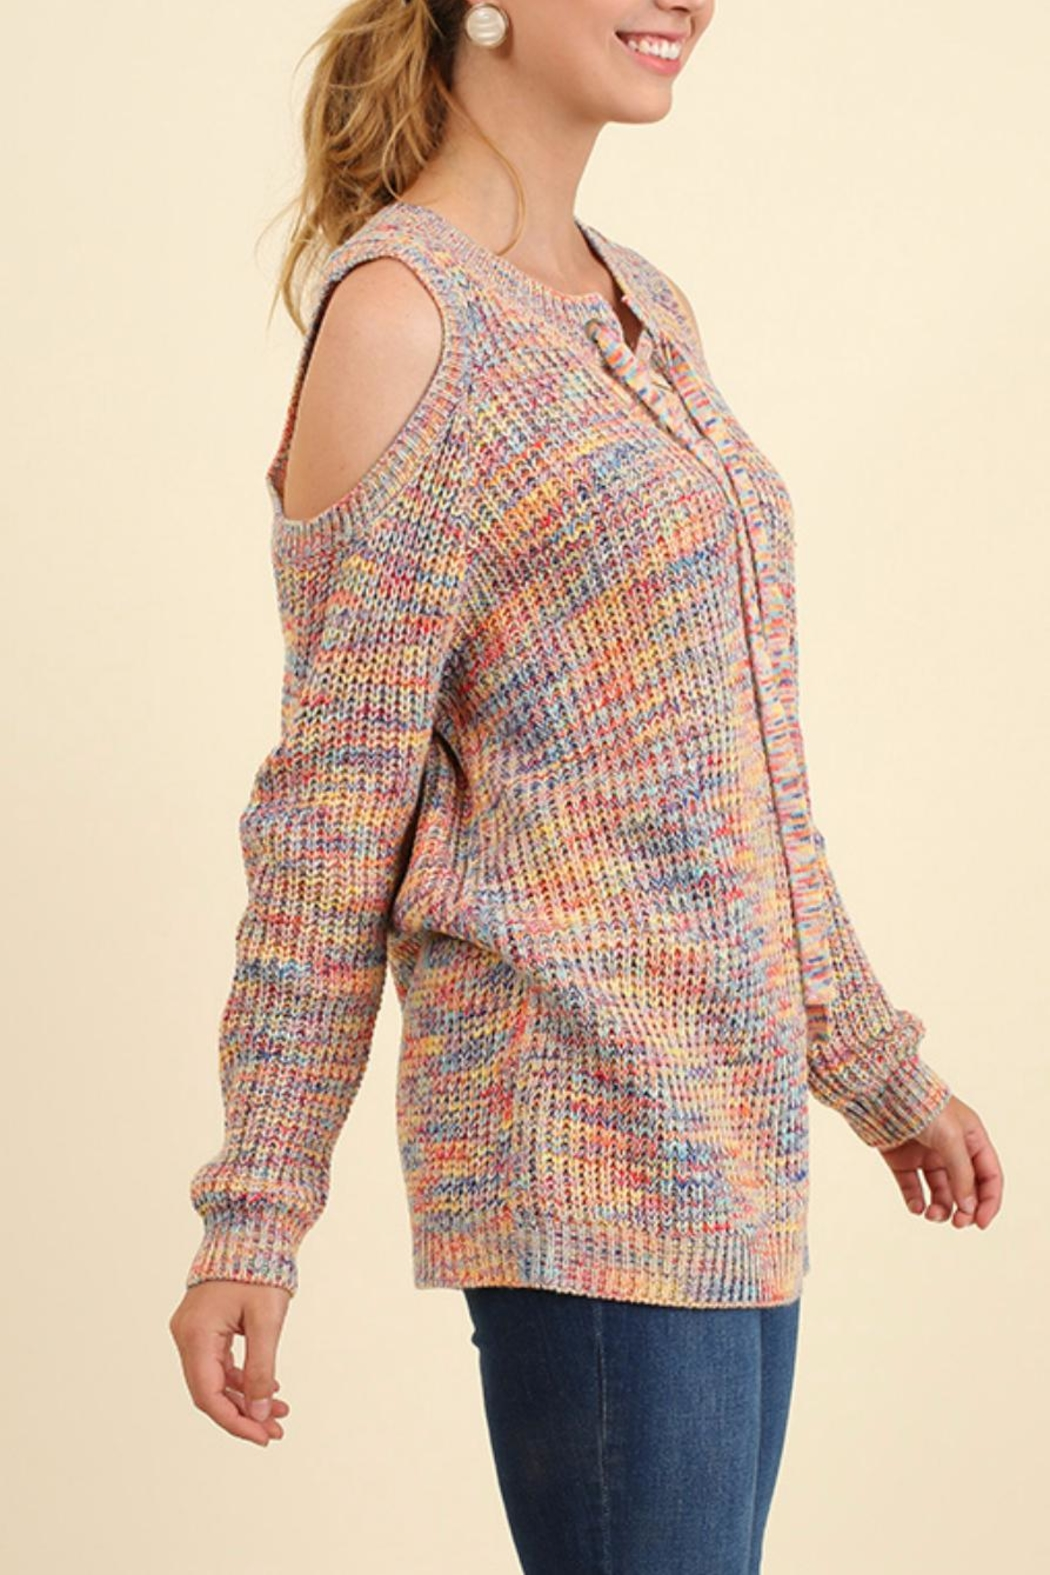 Umgee USA Open Shoulder Sweater - Front Full Image